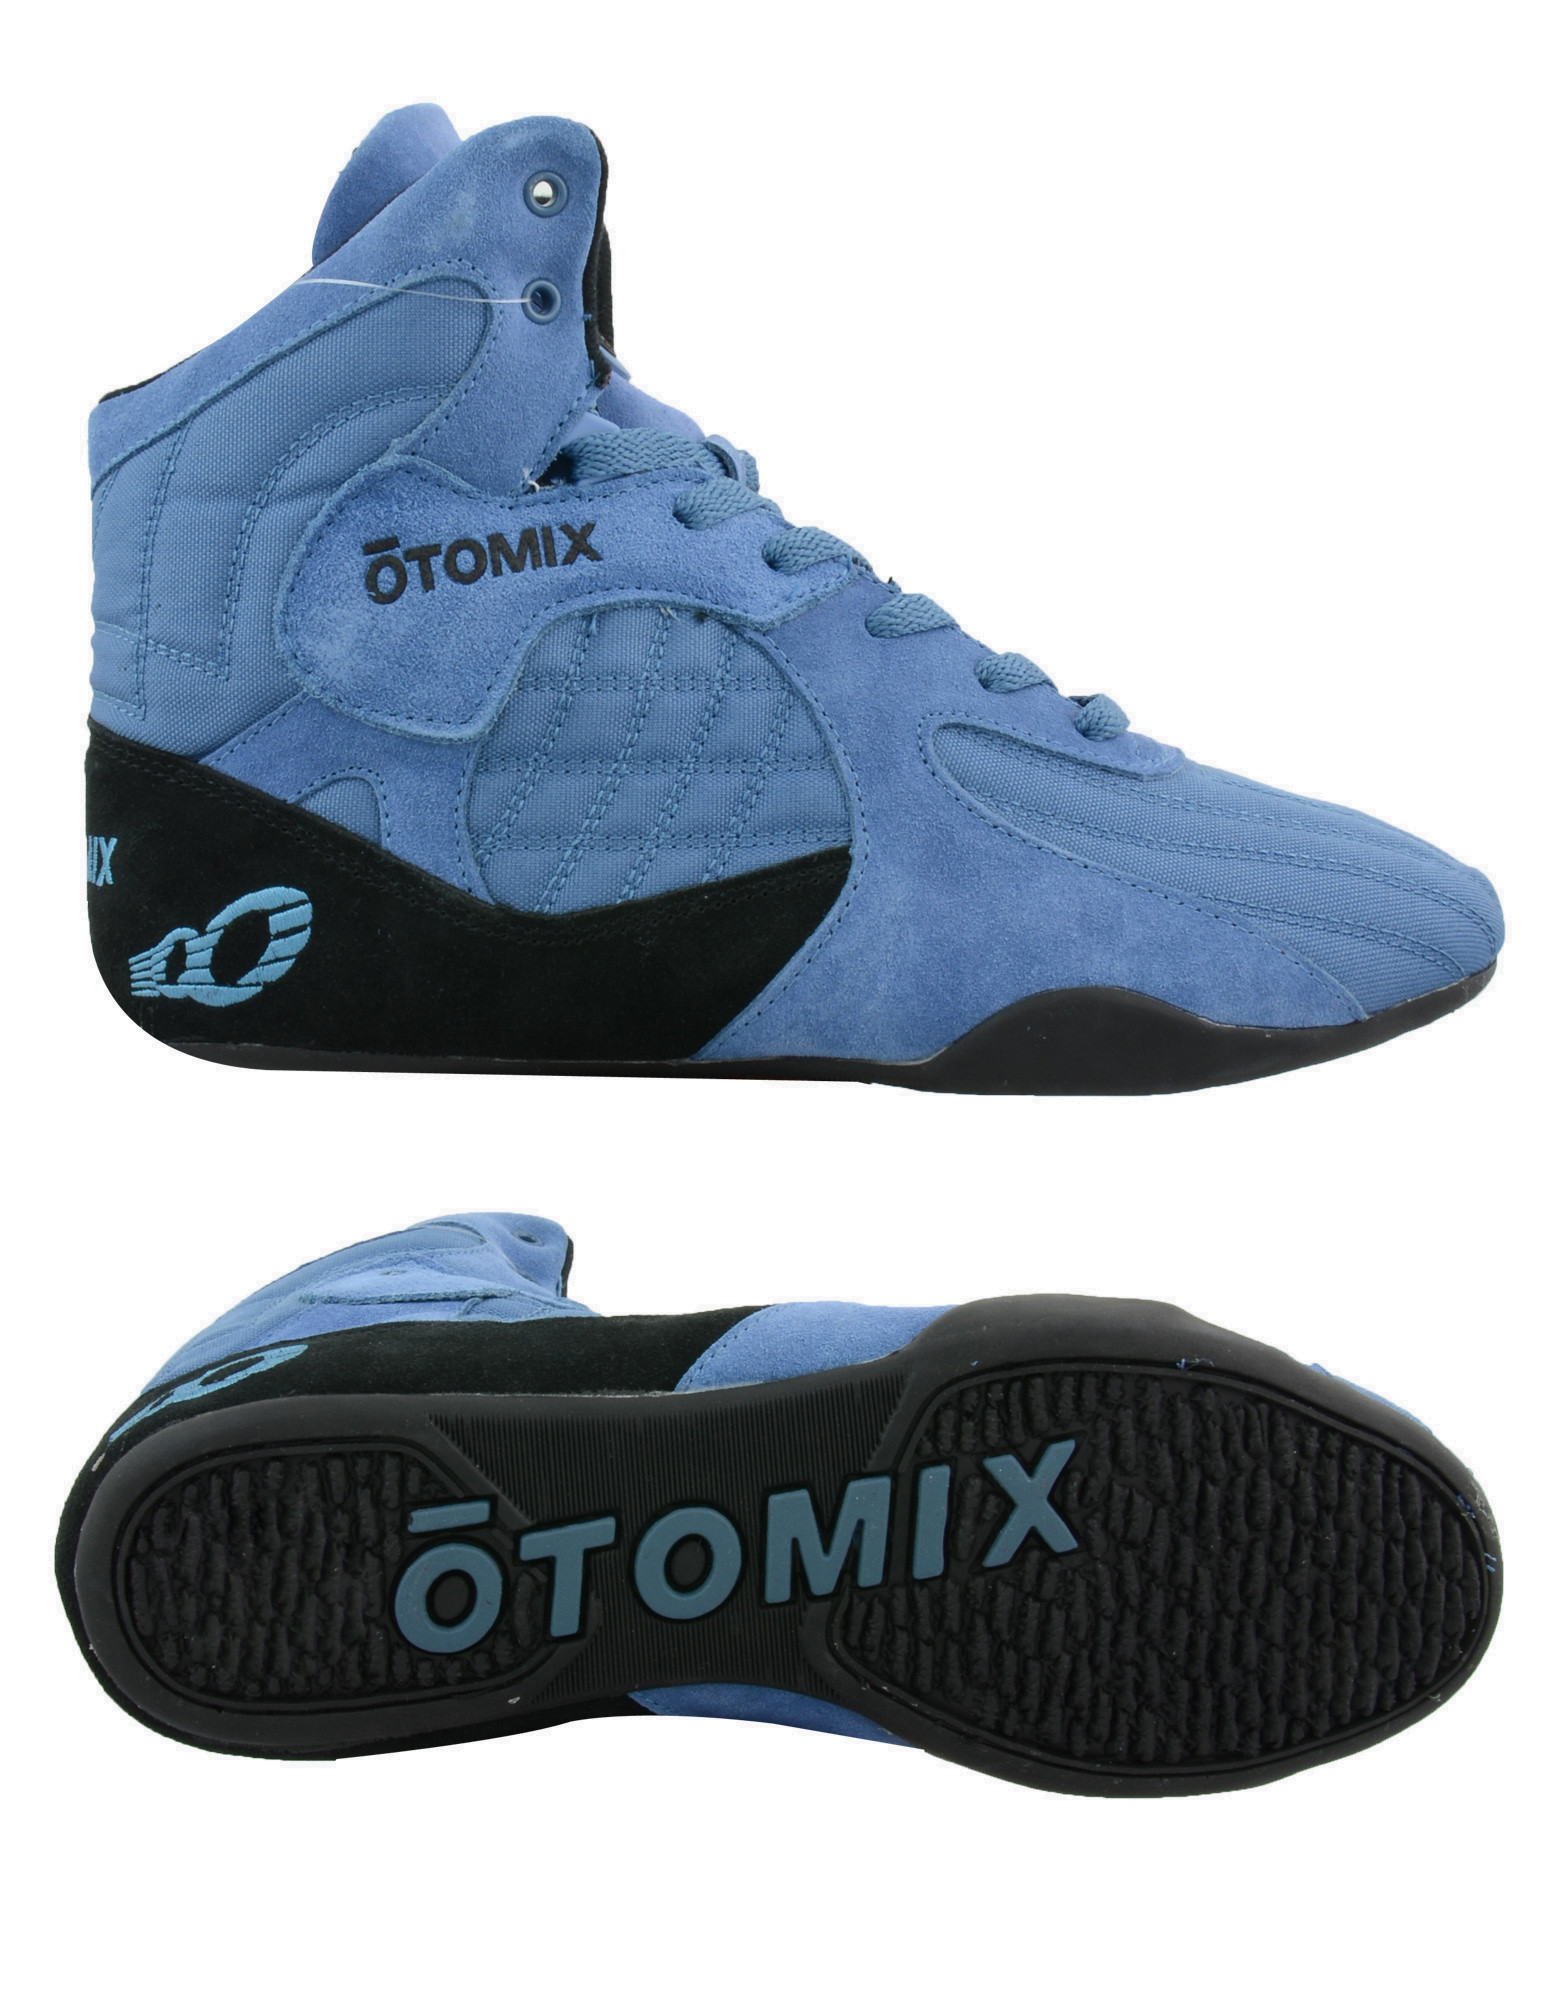 cc58b08337a2e9 The StingRay by OTOMIX (colour  blue)